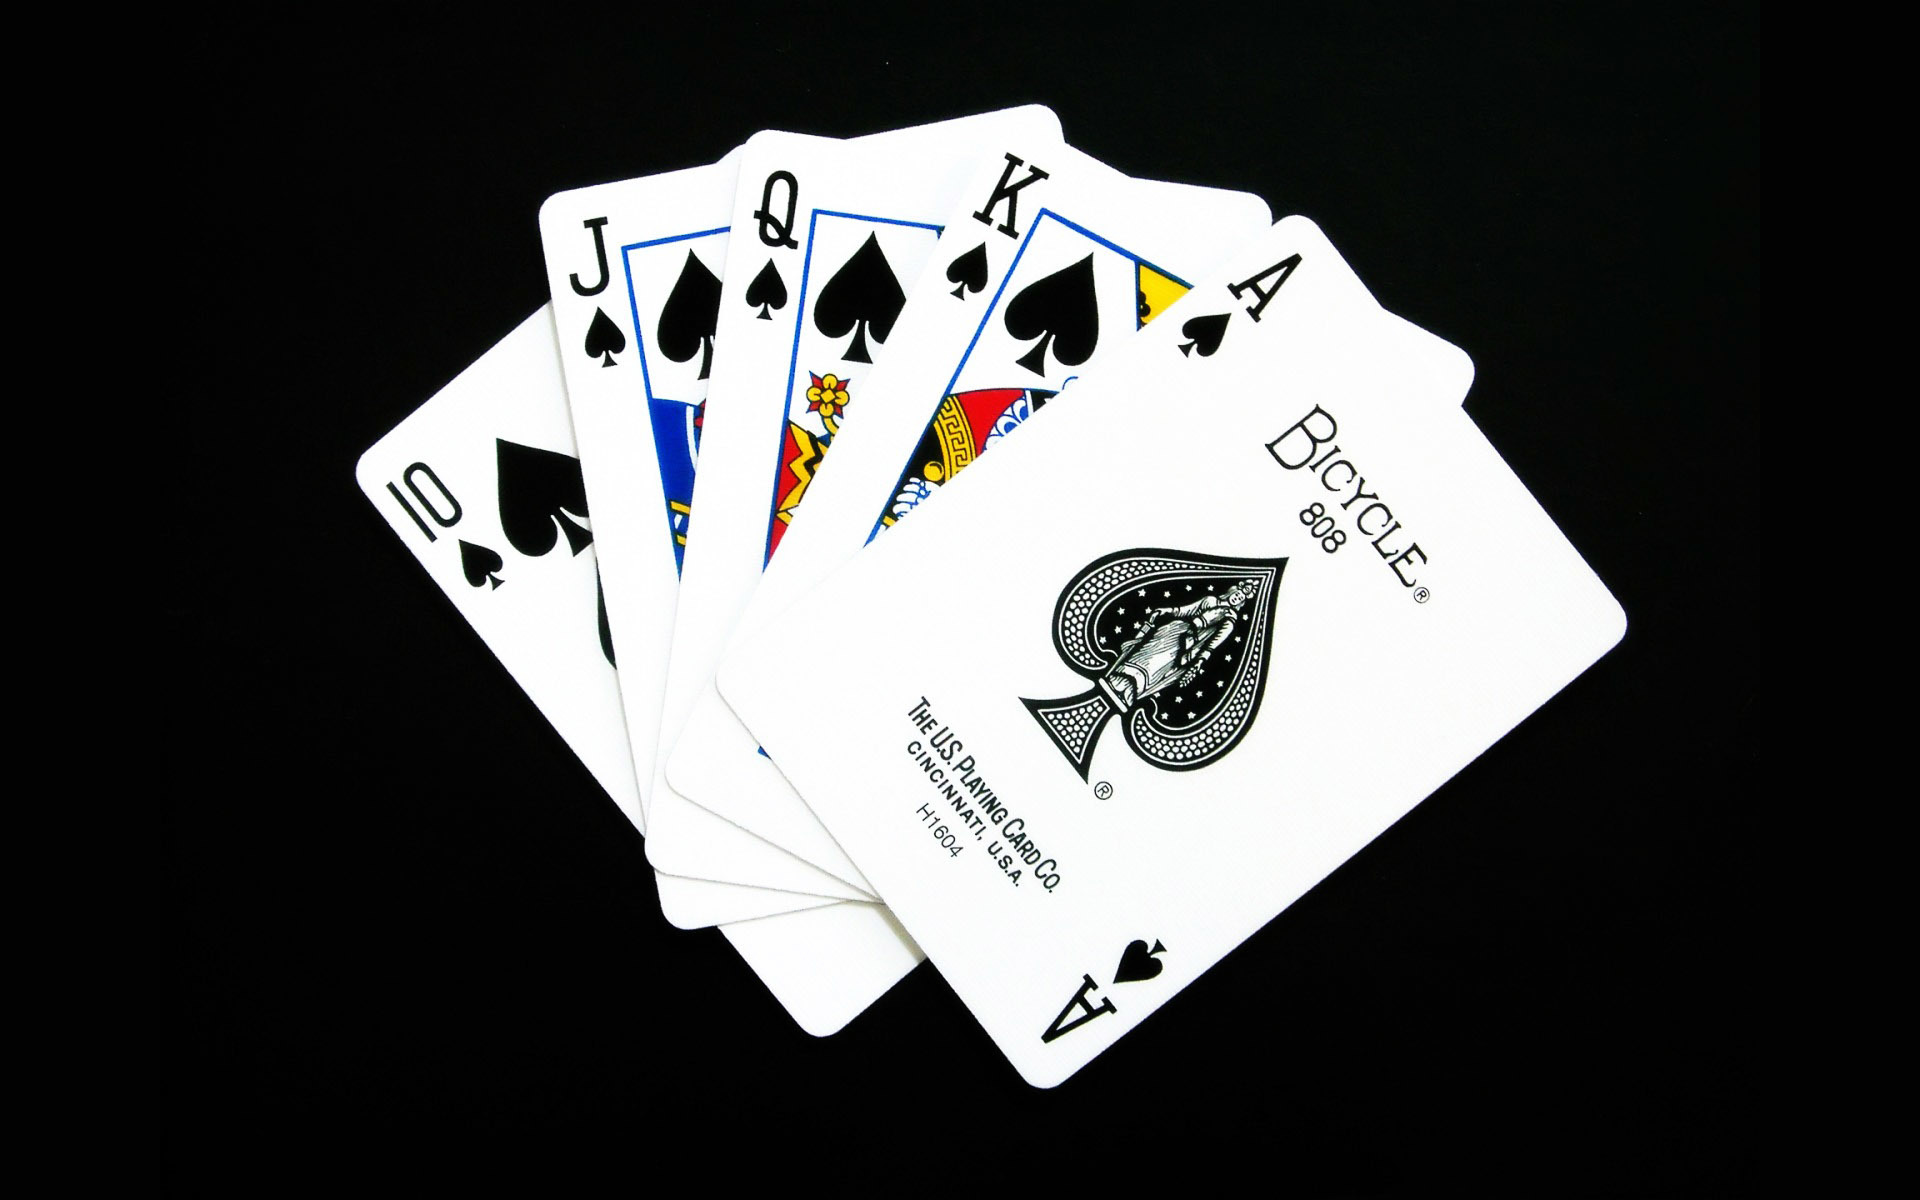 Cards spade black background HD Wallpaper